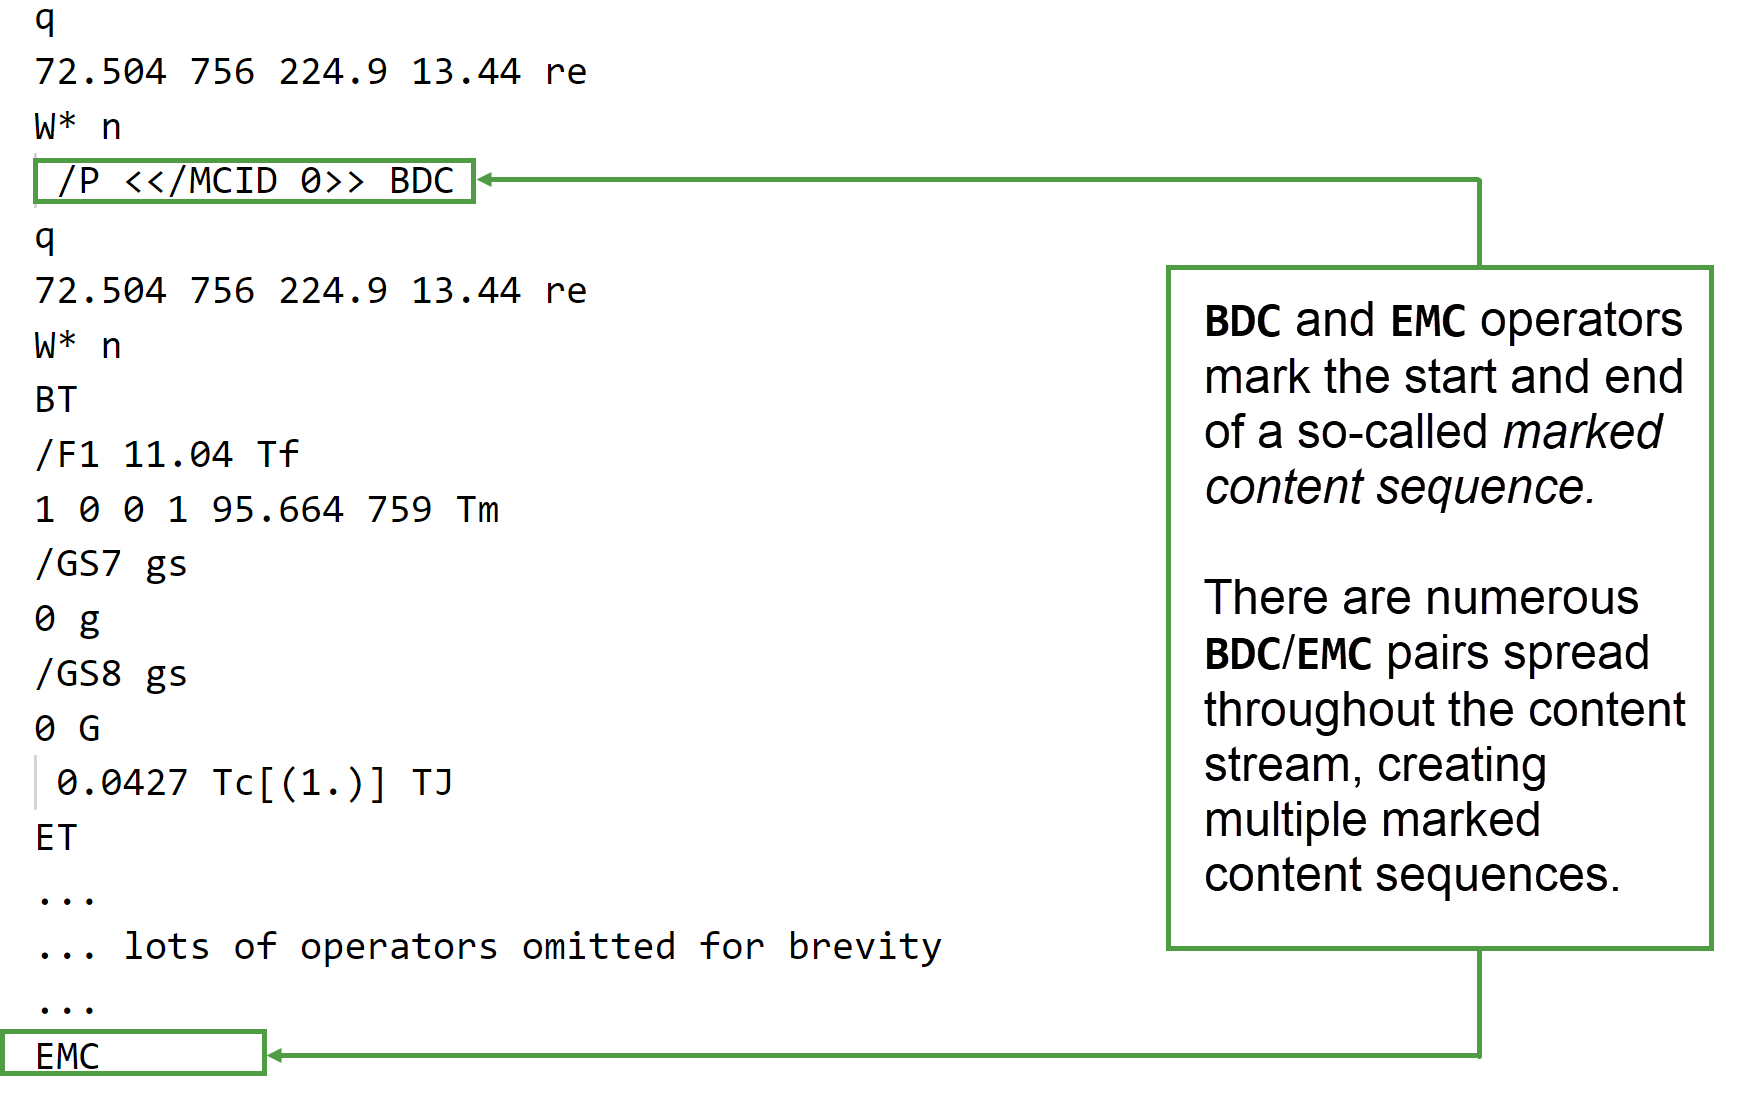 Image showing marked content sequences in a tagged PDF content stream